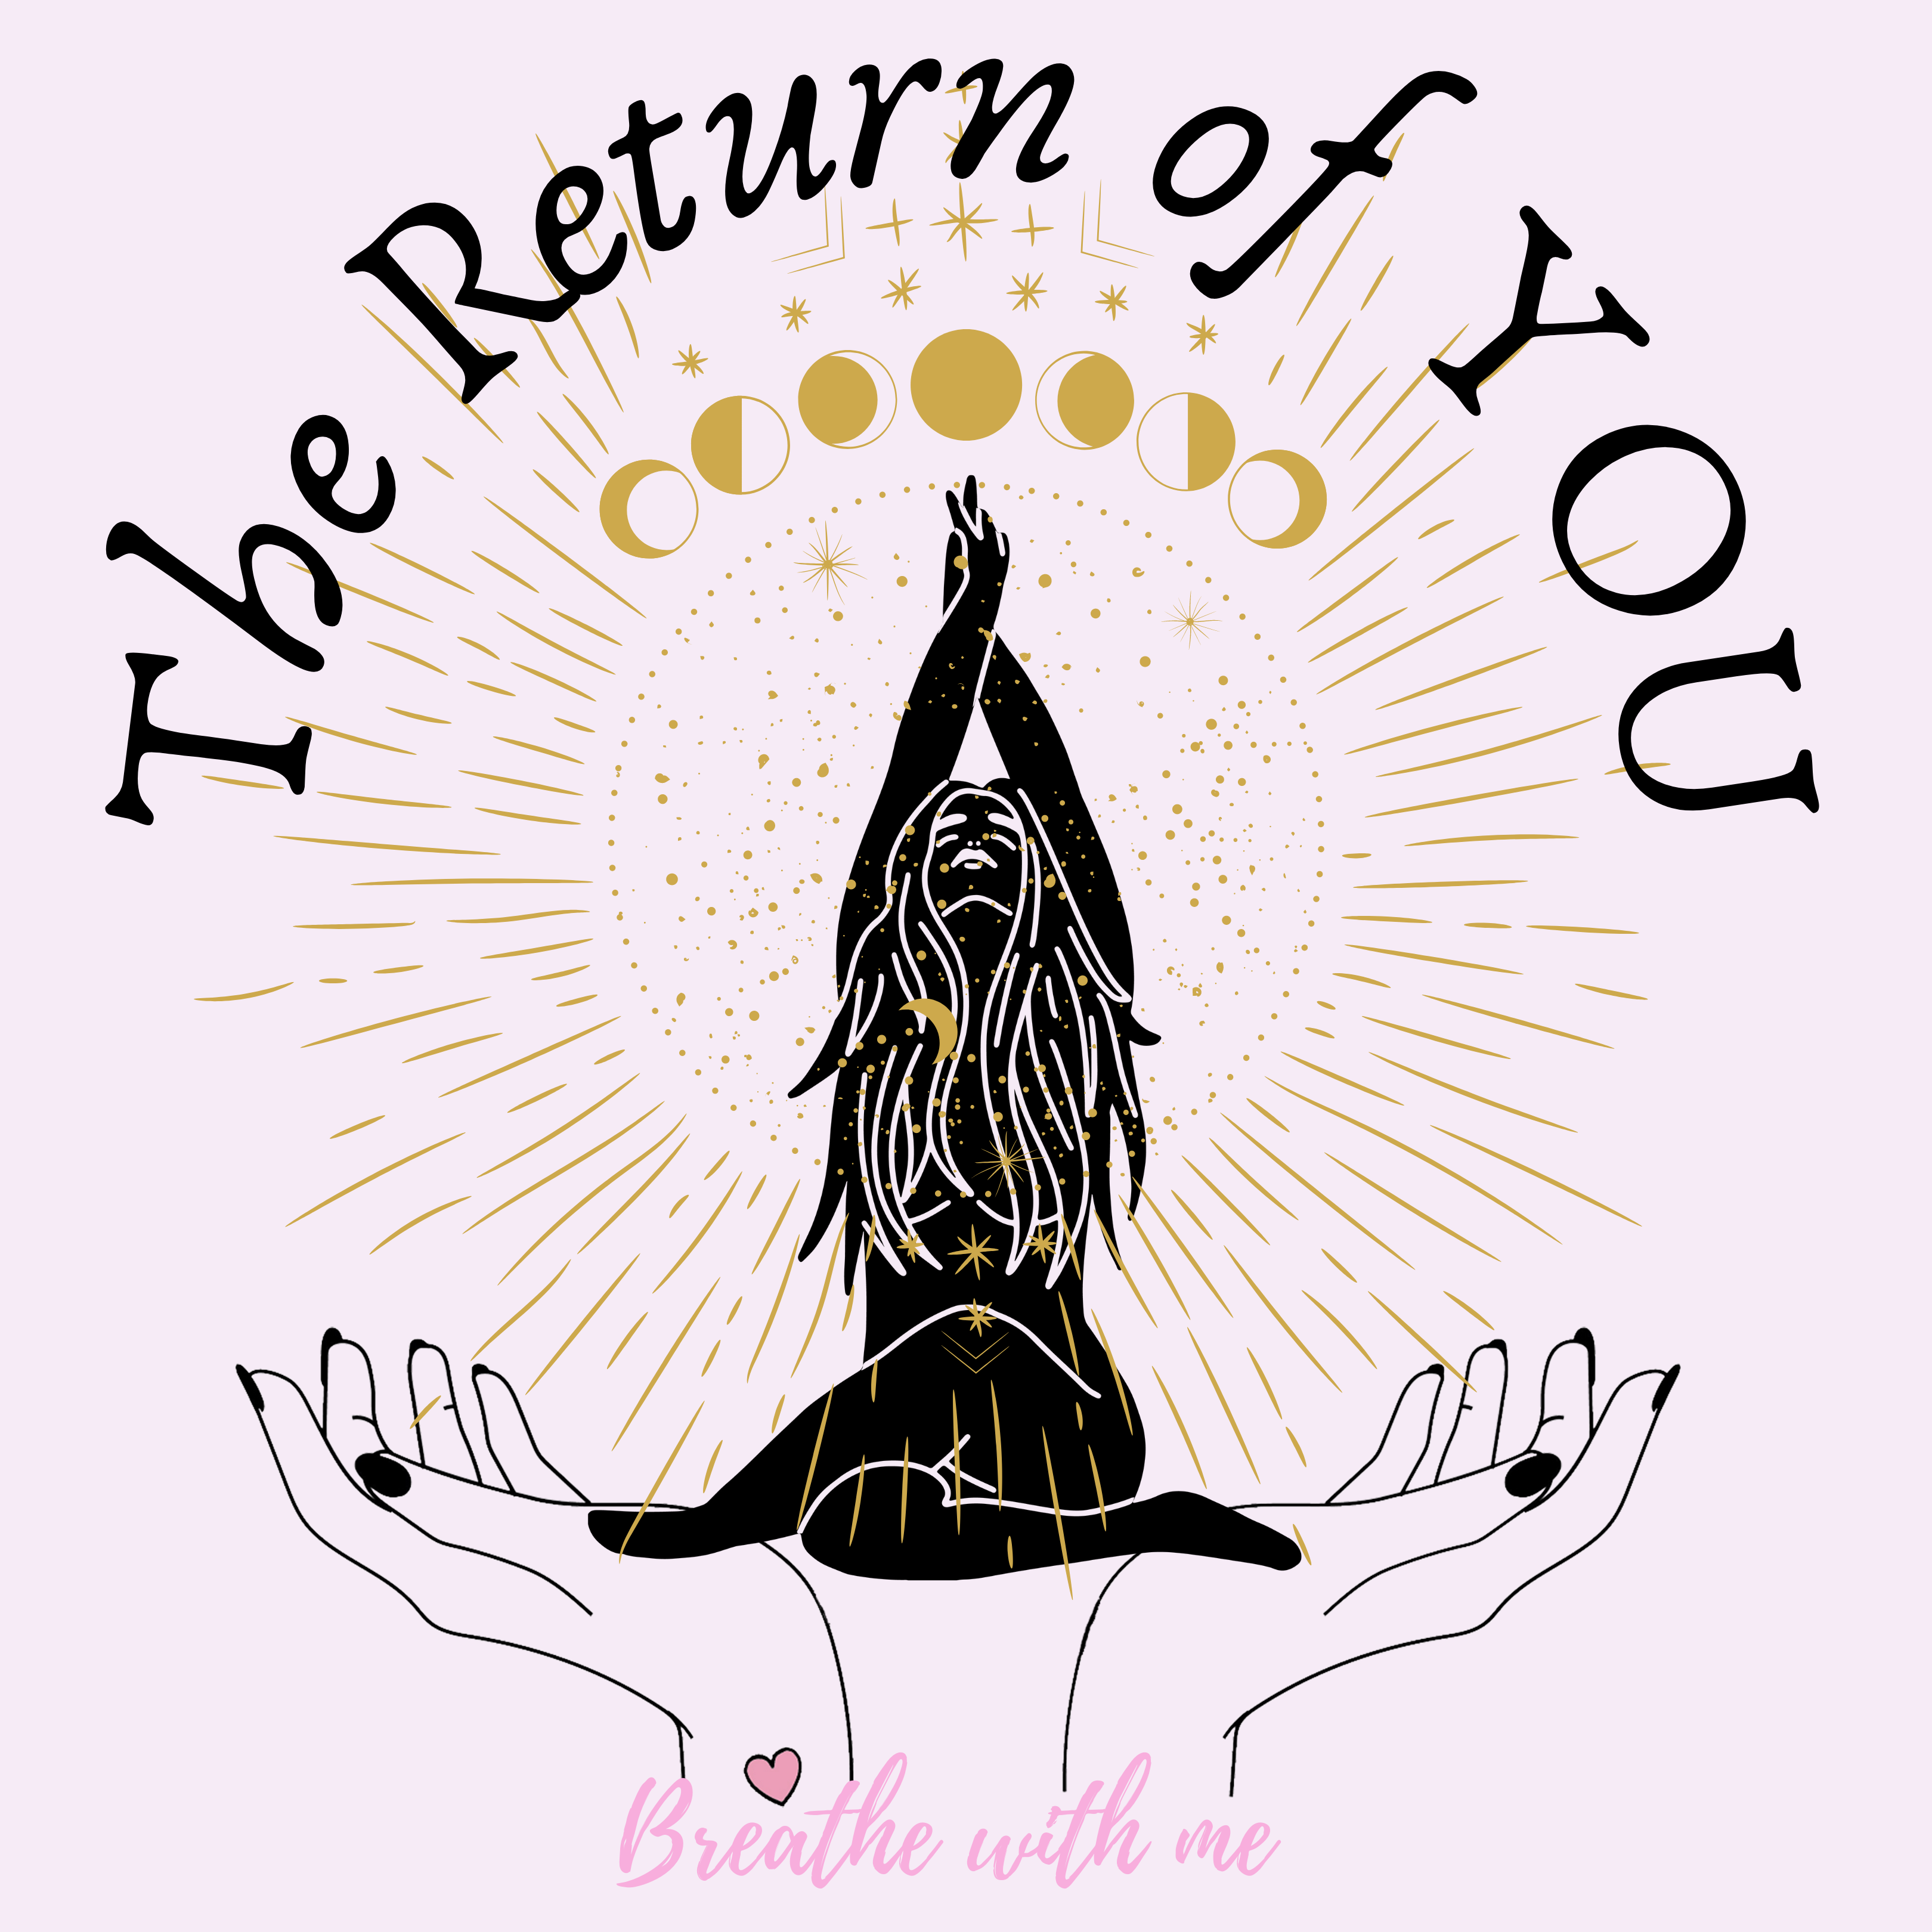 The return of you.